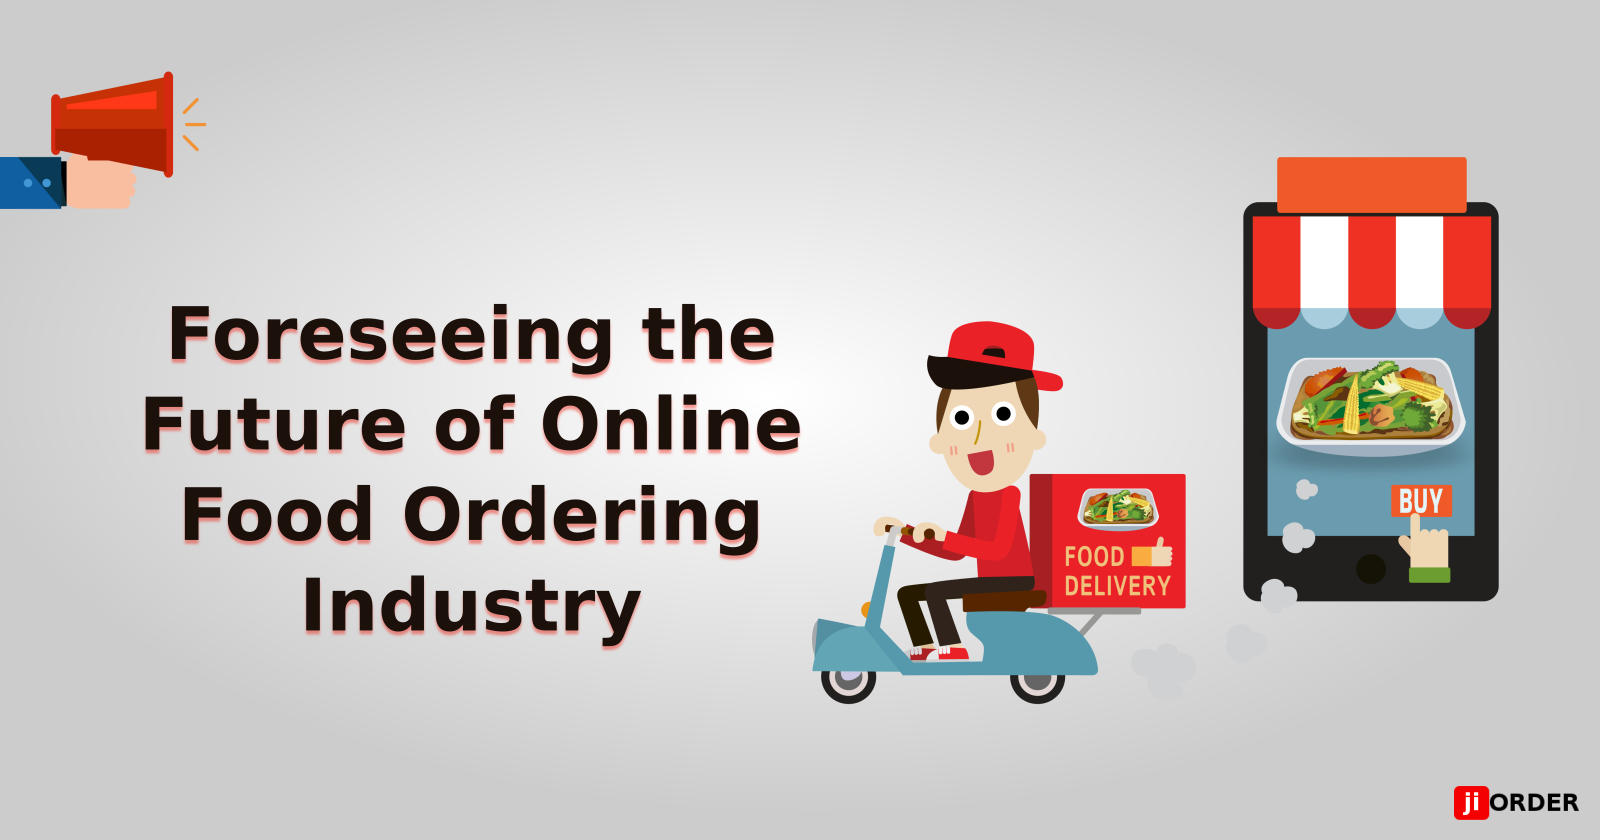 How Technology will Transform the Future of Online Food Ordering System?